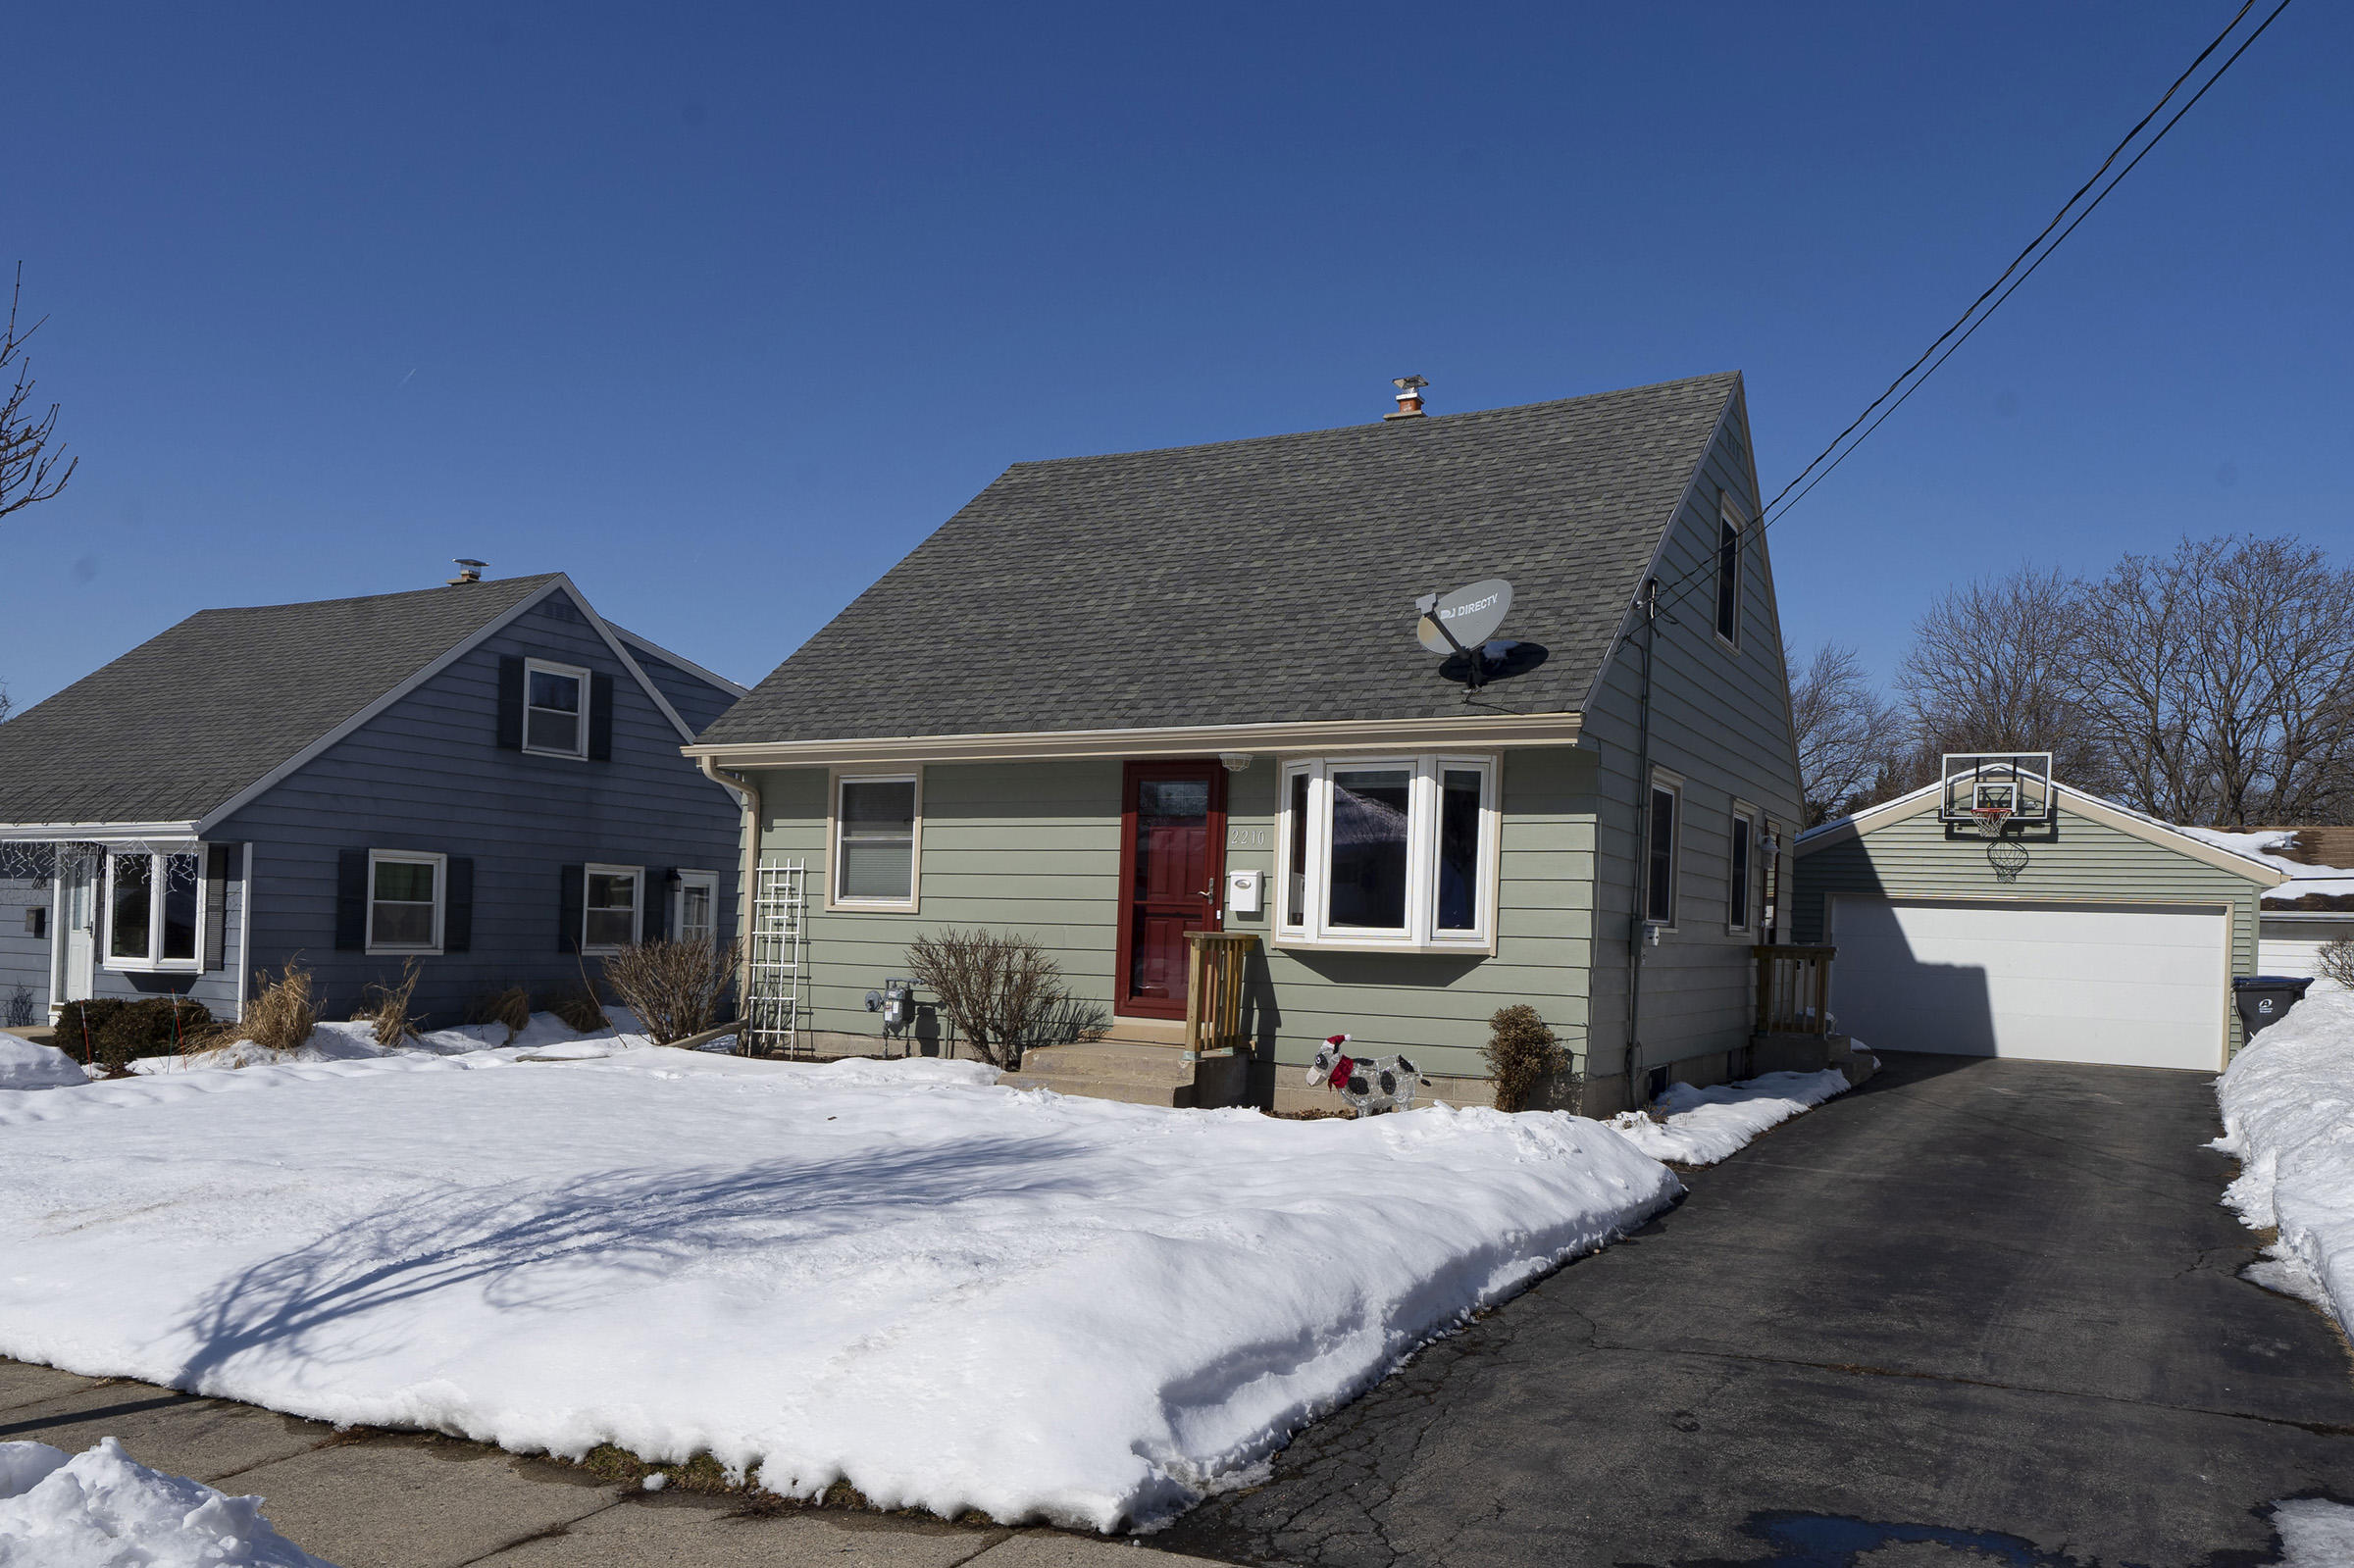 2210 Easy St, Waukesha, Wisconsin 53188, 4 Bedrooms Bedrooms, 6 Rooms Rooms,2 BathroomsBathrooms,Single-Family,For Sale,Easy St,1677988